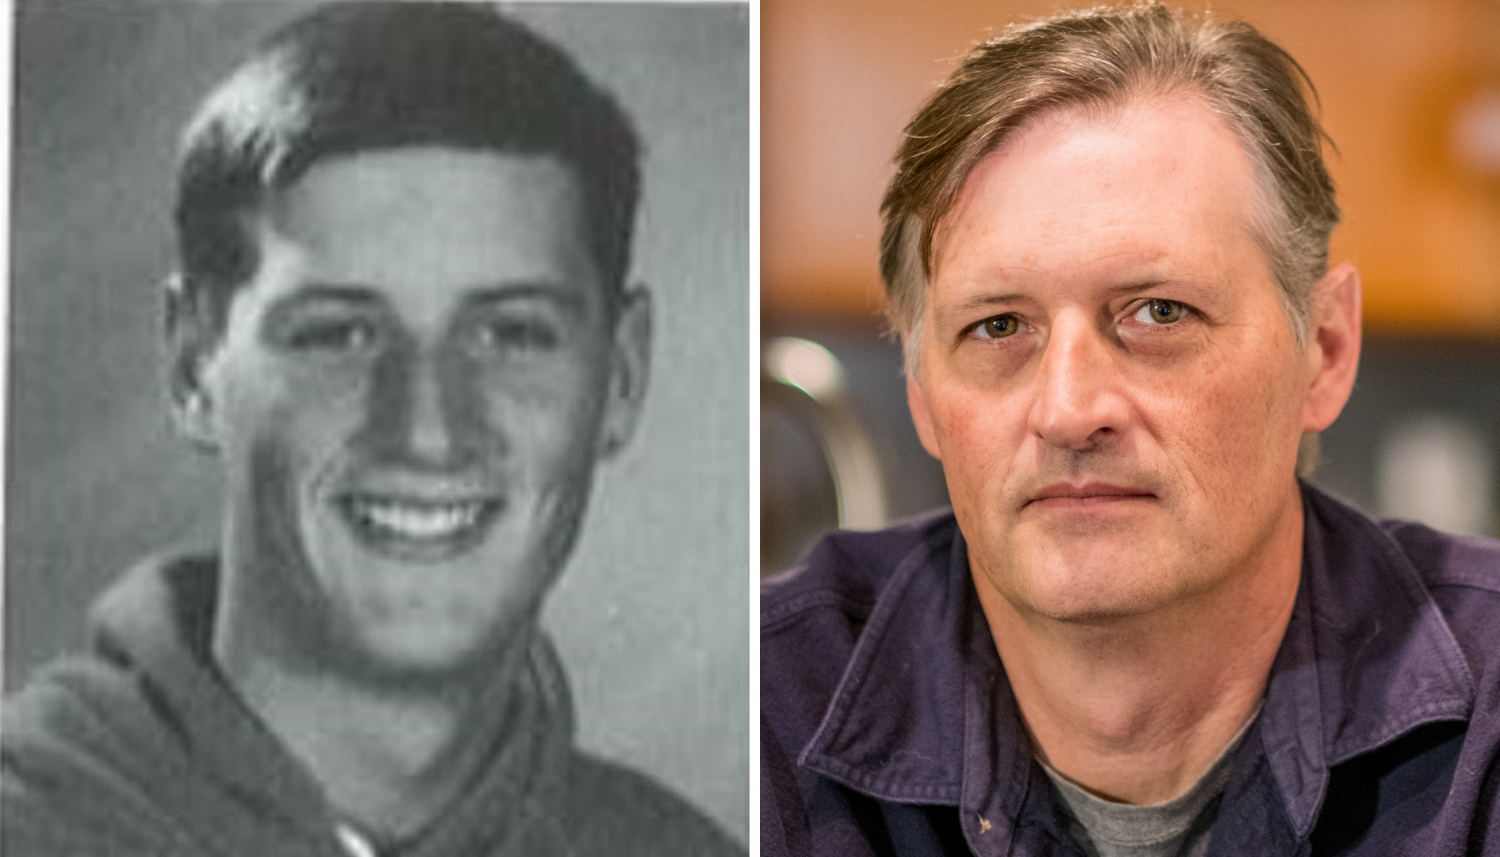 From left, Marc Leach's yearbook photo from 1992, and Leach in 2018. (Michel Aspirot/CBC)